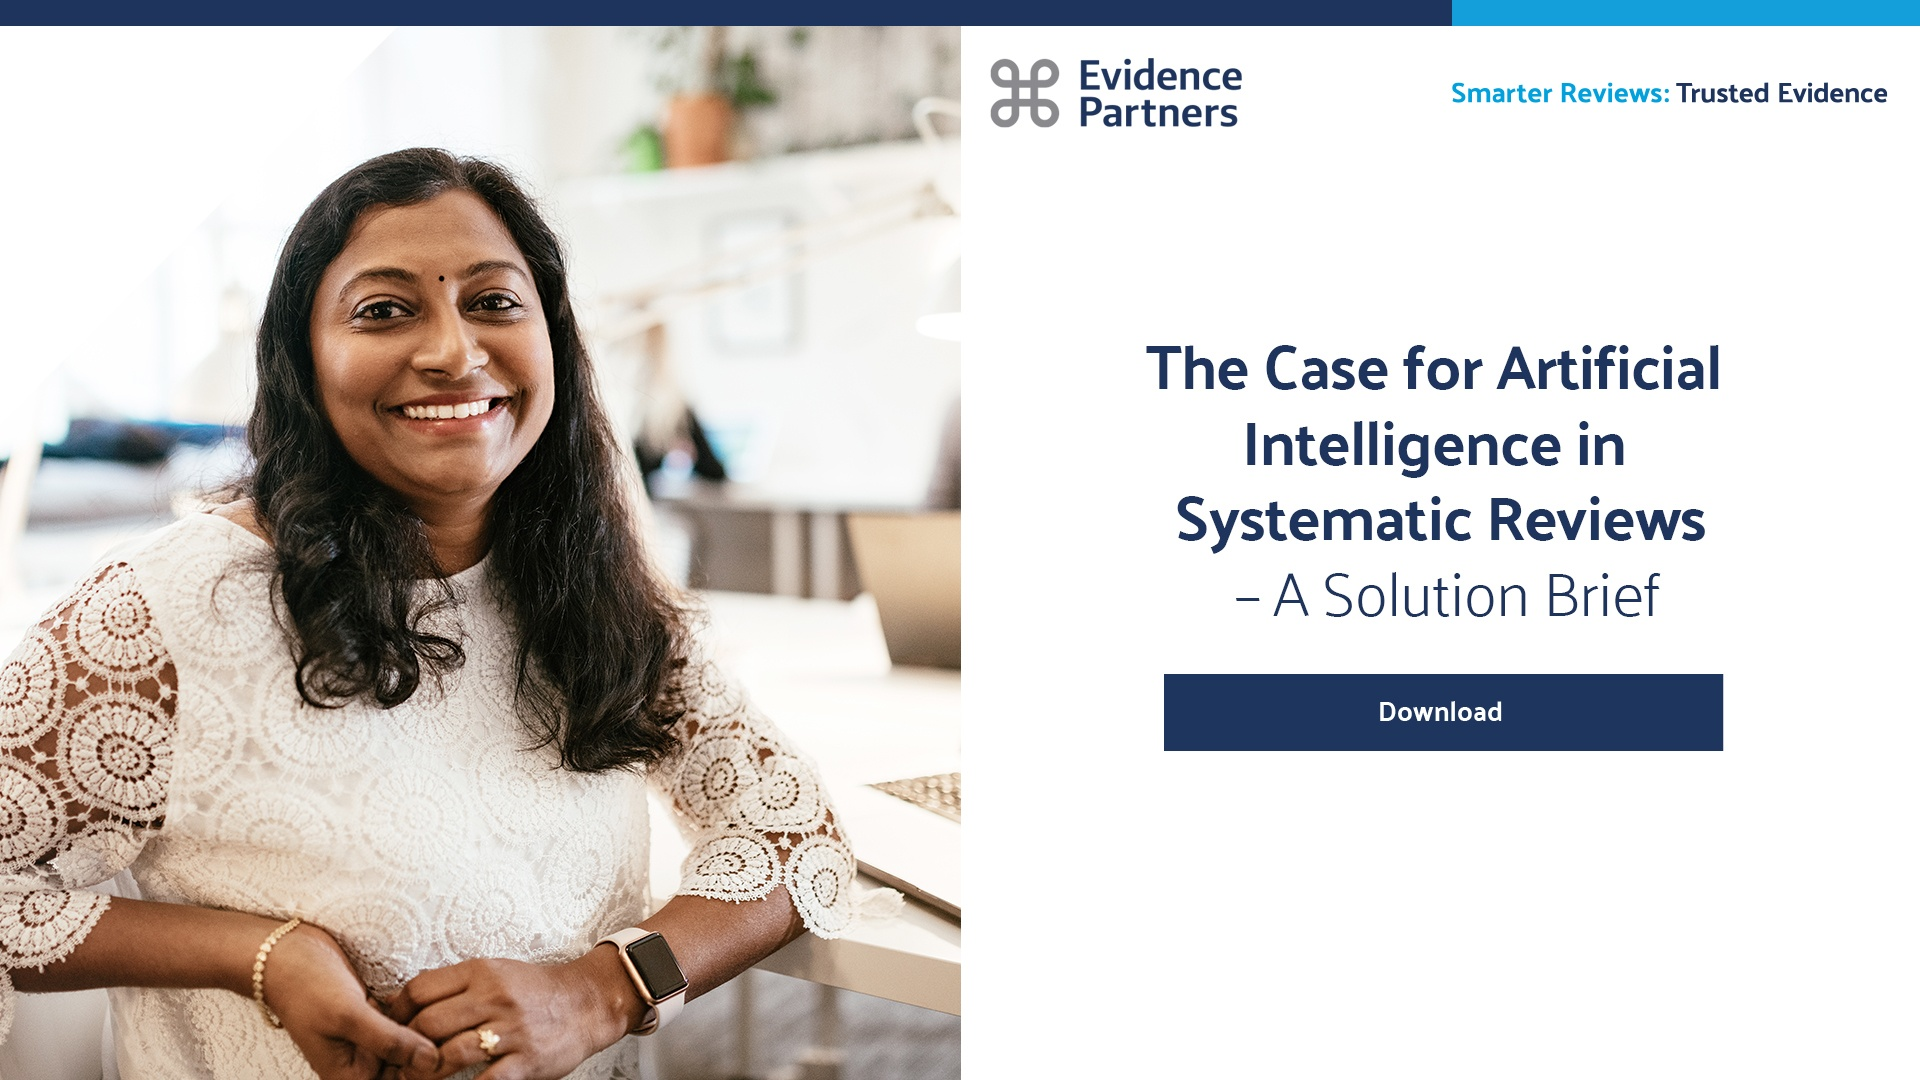 Download 'The Case for Artificial Intelligence in Systematic Reviews' Solution Brief